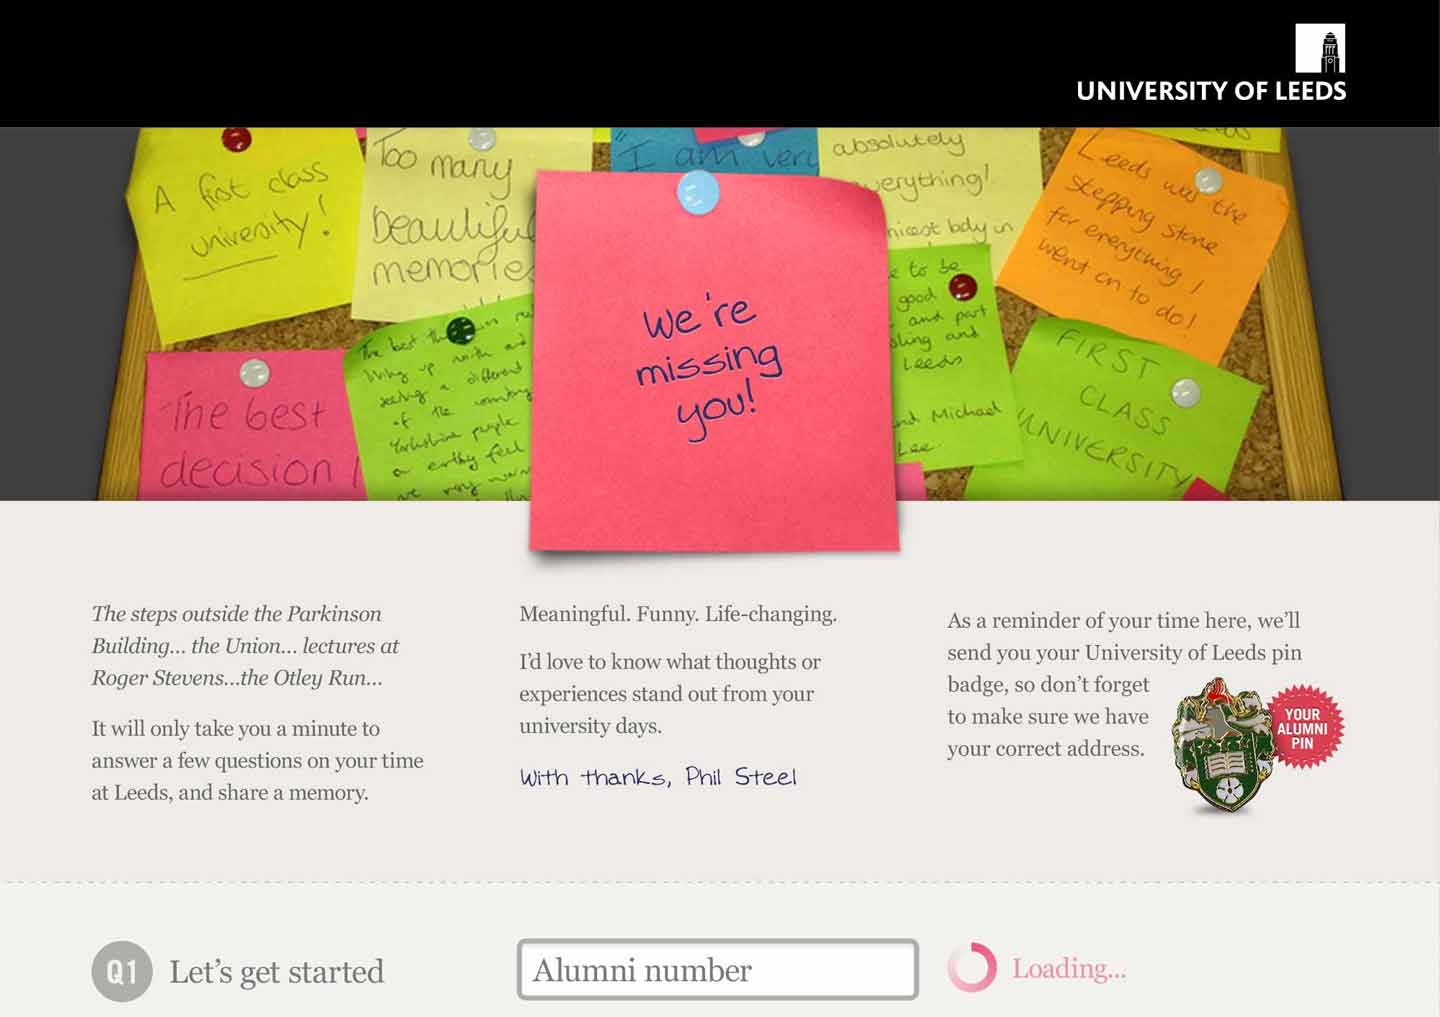 We created an online version of the campaign and displayed the post-it memories on Twitter, Facebook and Flickr.